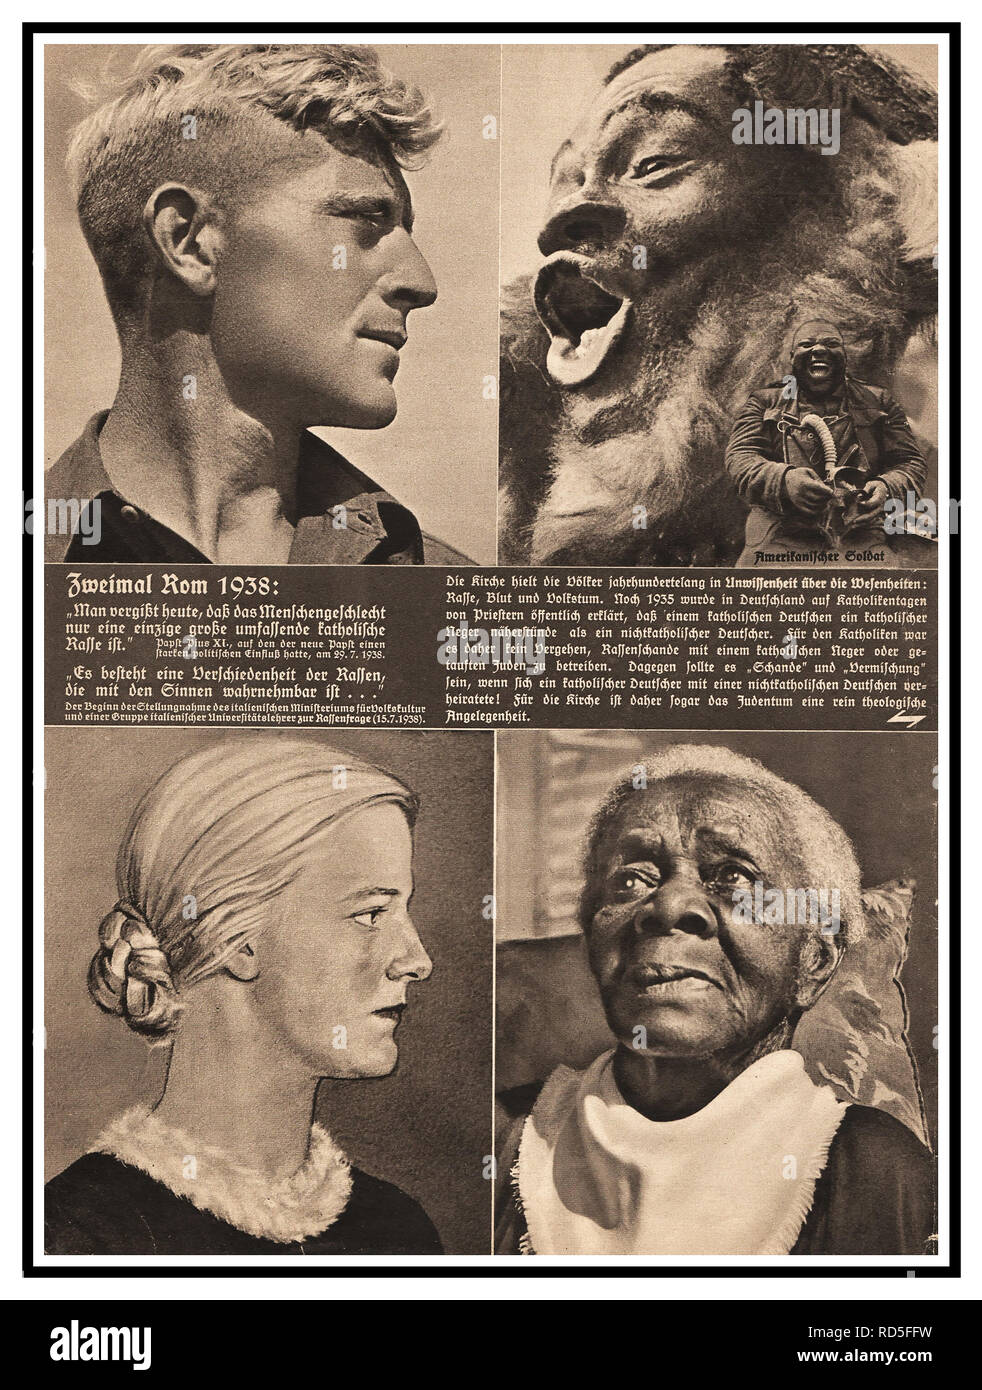 1938 Vintage Nazi German Racist Propaganda Press article. Stereotype images portraying the purest stock of Aryans according to Nazi ideology, the Nordic people of Germany, compared to other Nazi designated 'inferior' race stereotypes. Stock Photo